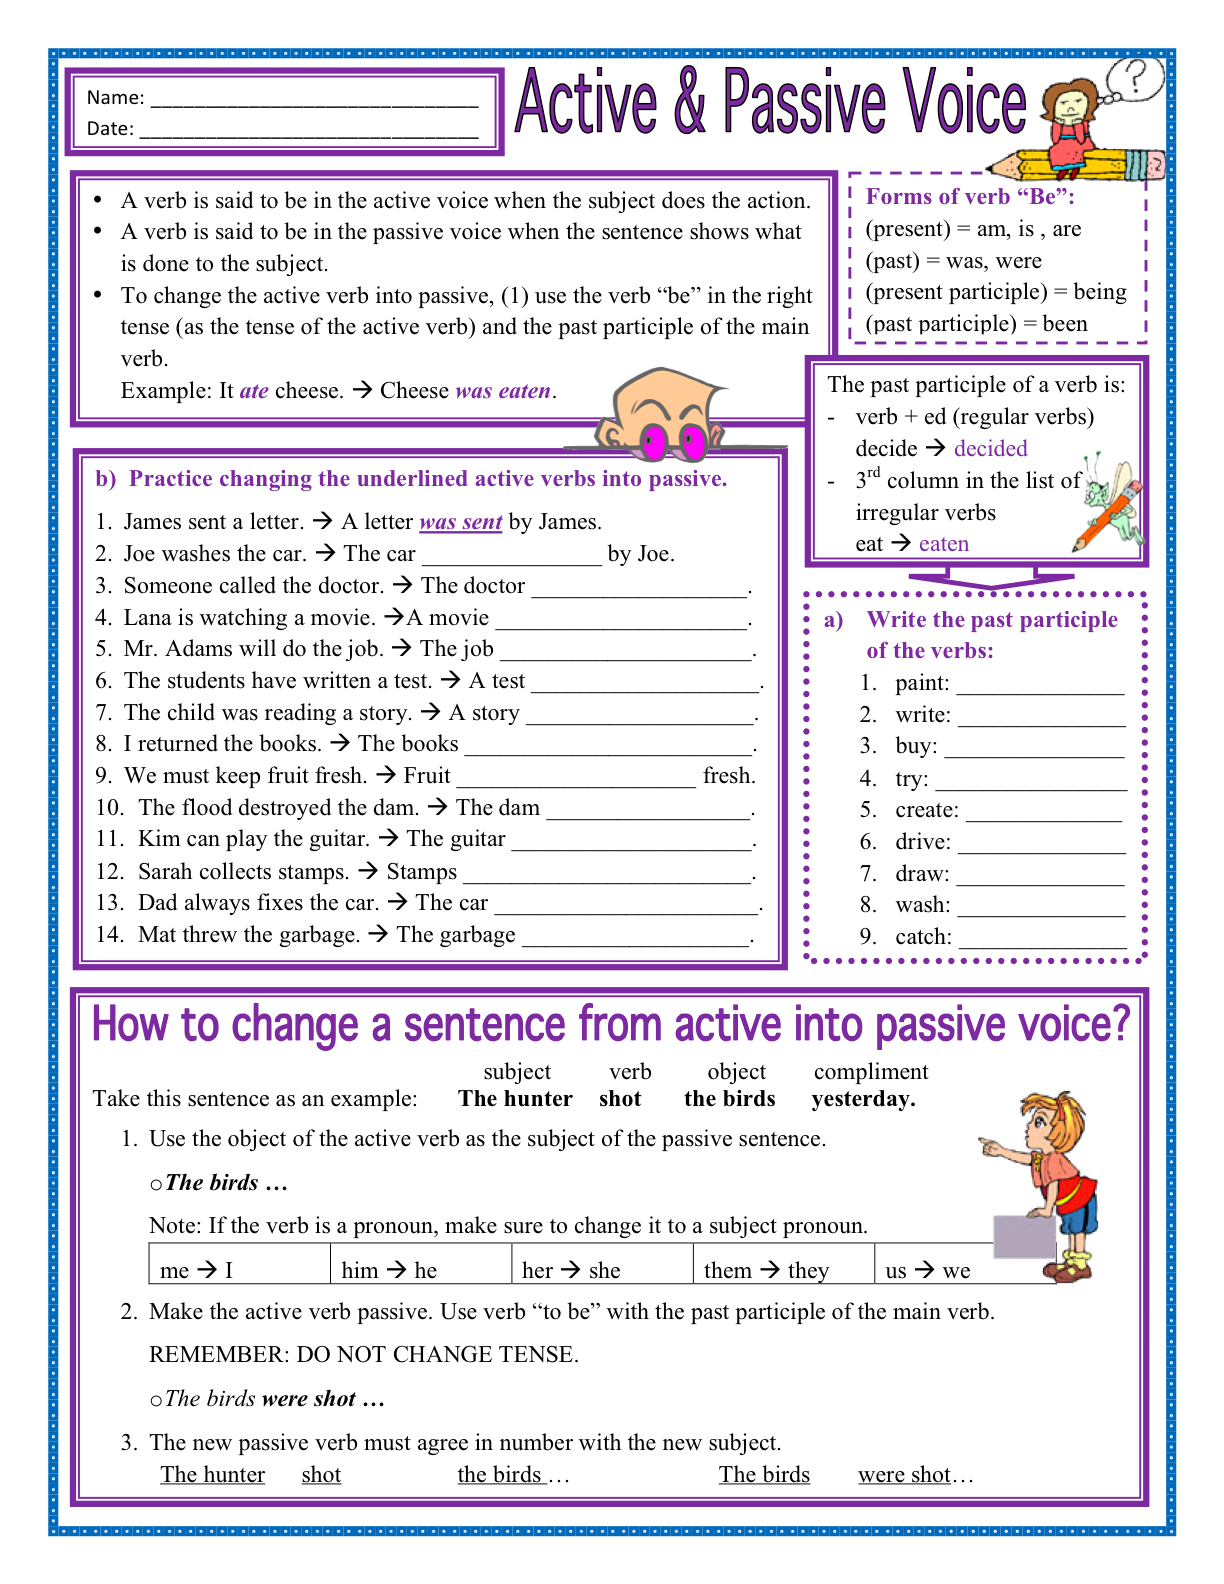 worksheet Simple Future Tense Worksheets Pdf passive voice lessons tes teach exercises pdf with key owen